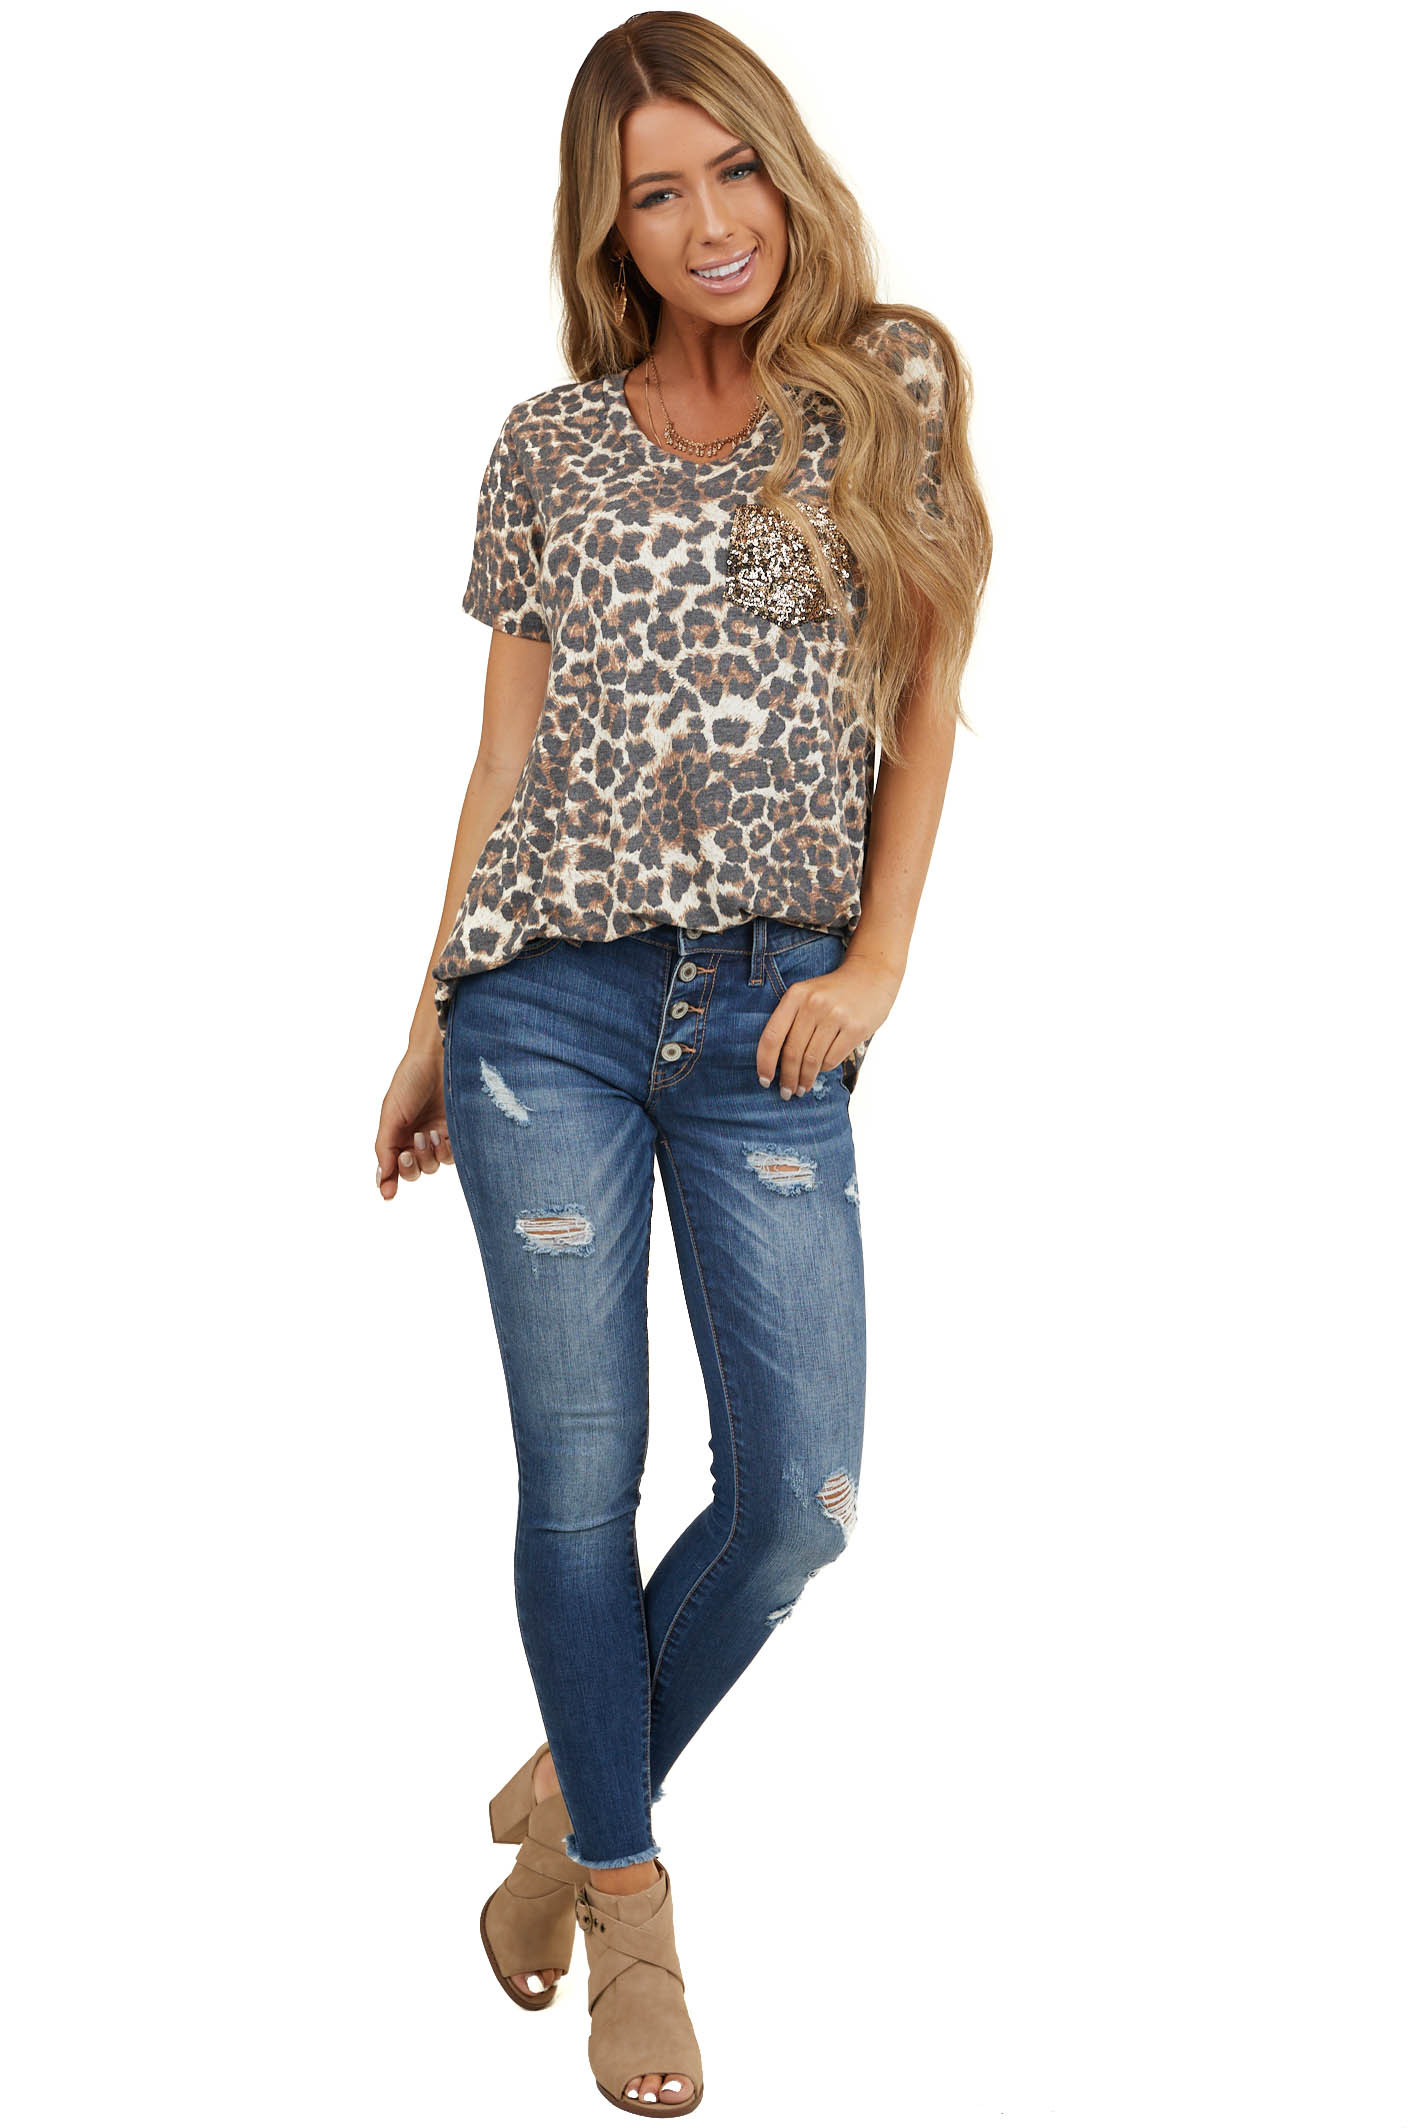 Mocha Leopard Print Short Sleeve Top with Gold Sequin Pocket